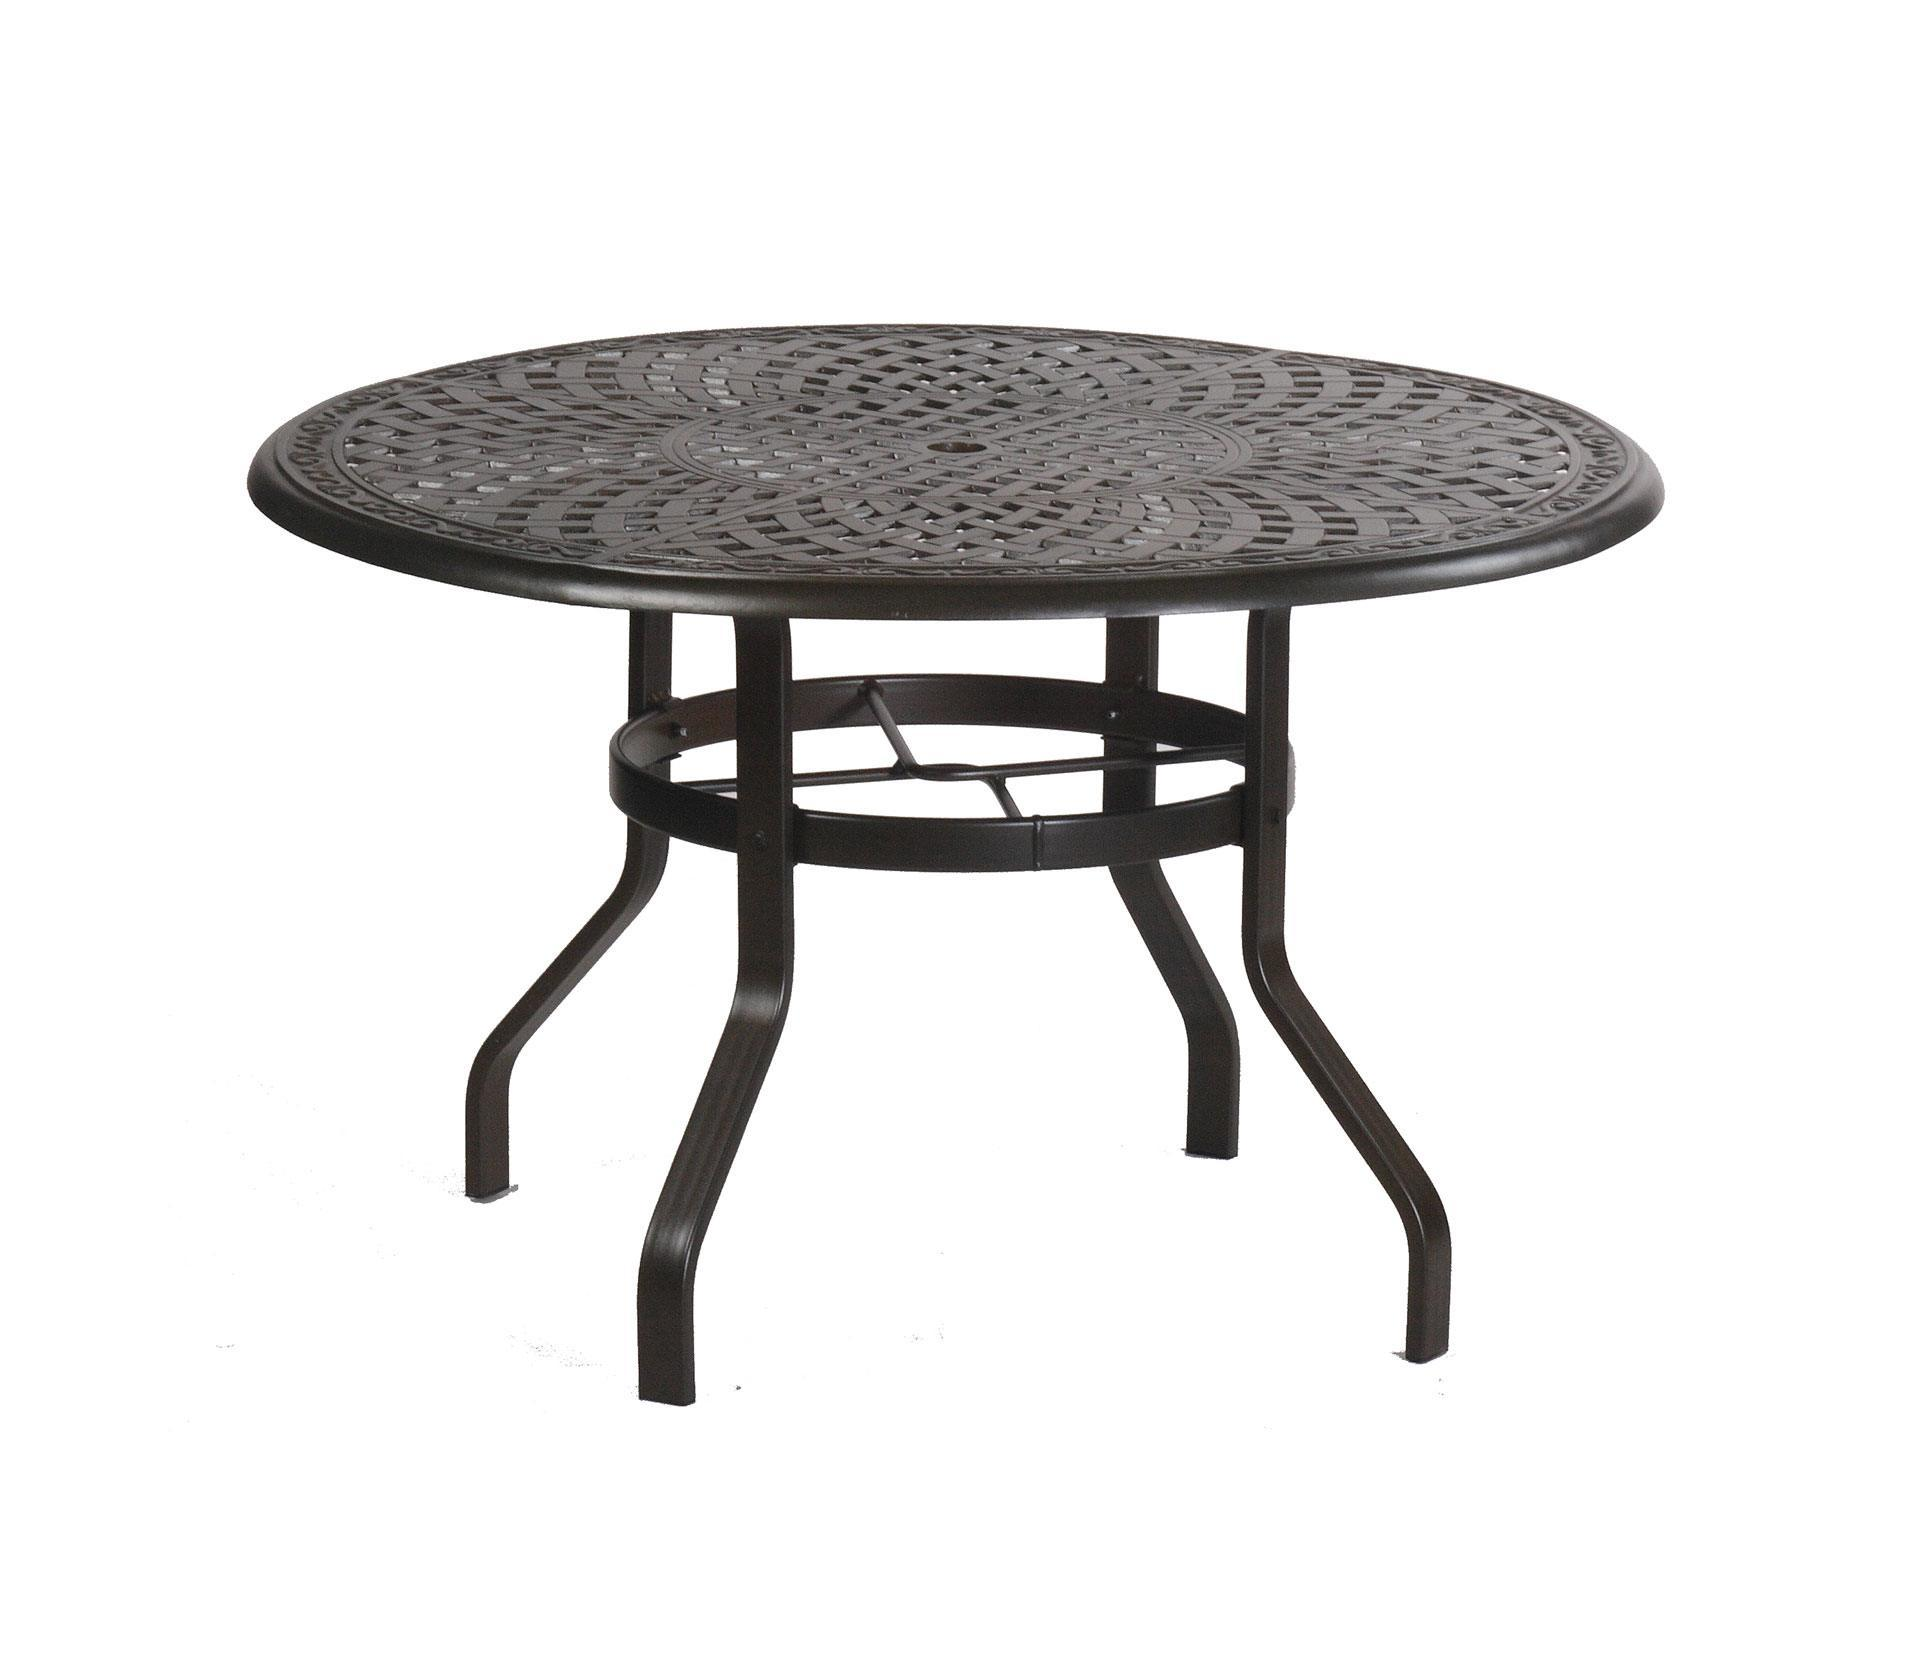 High Round Dining Table: Alumont Waverly 42 Round High Dining Table